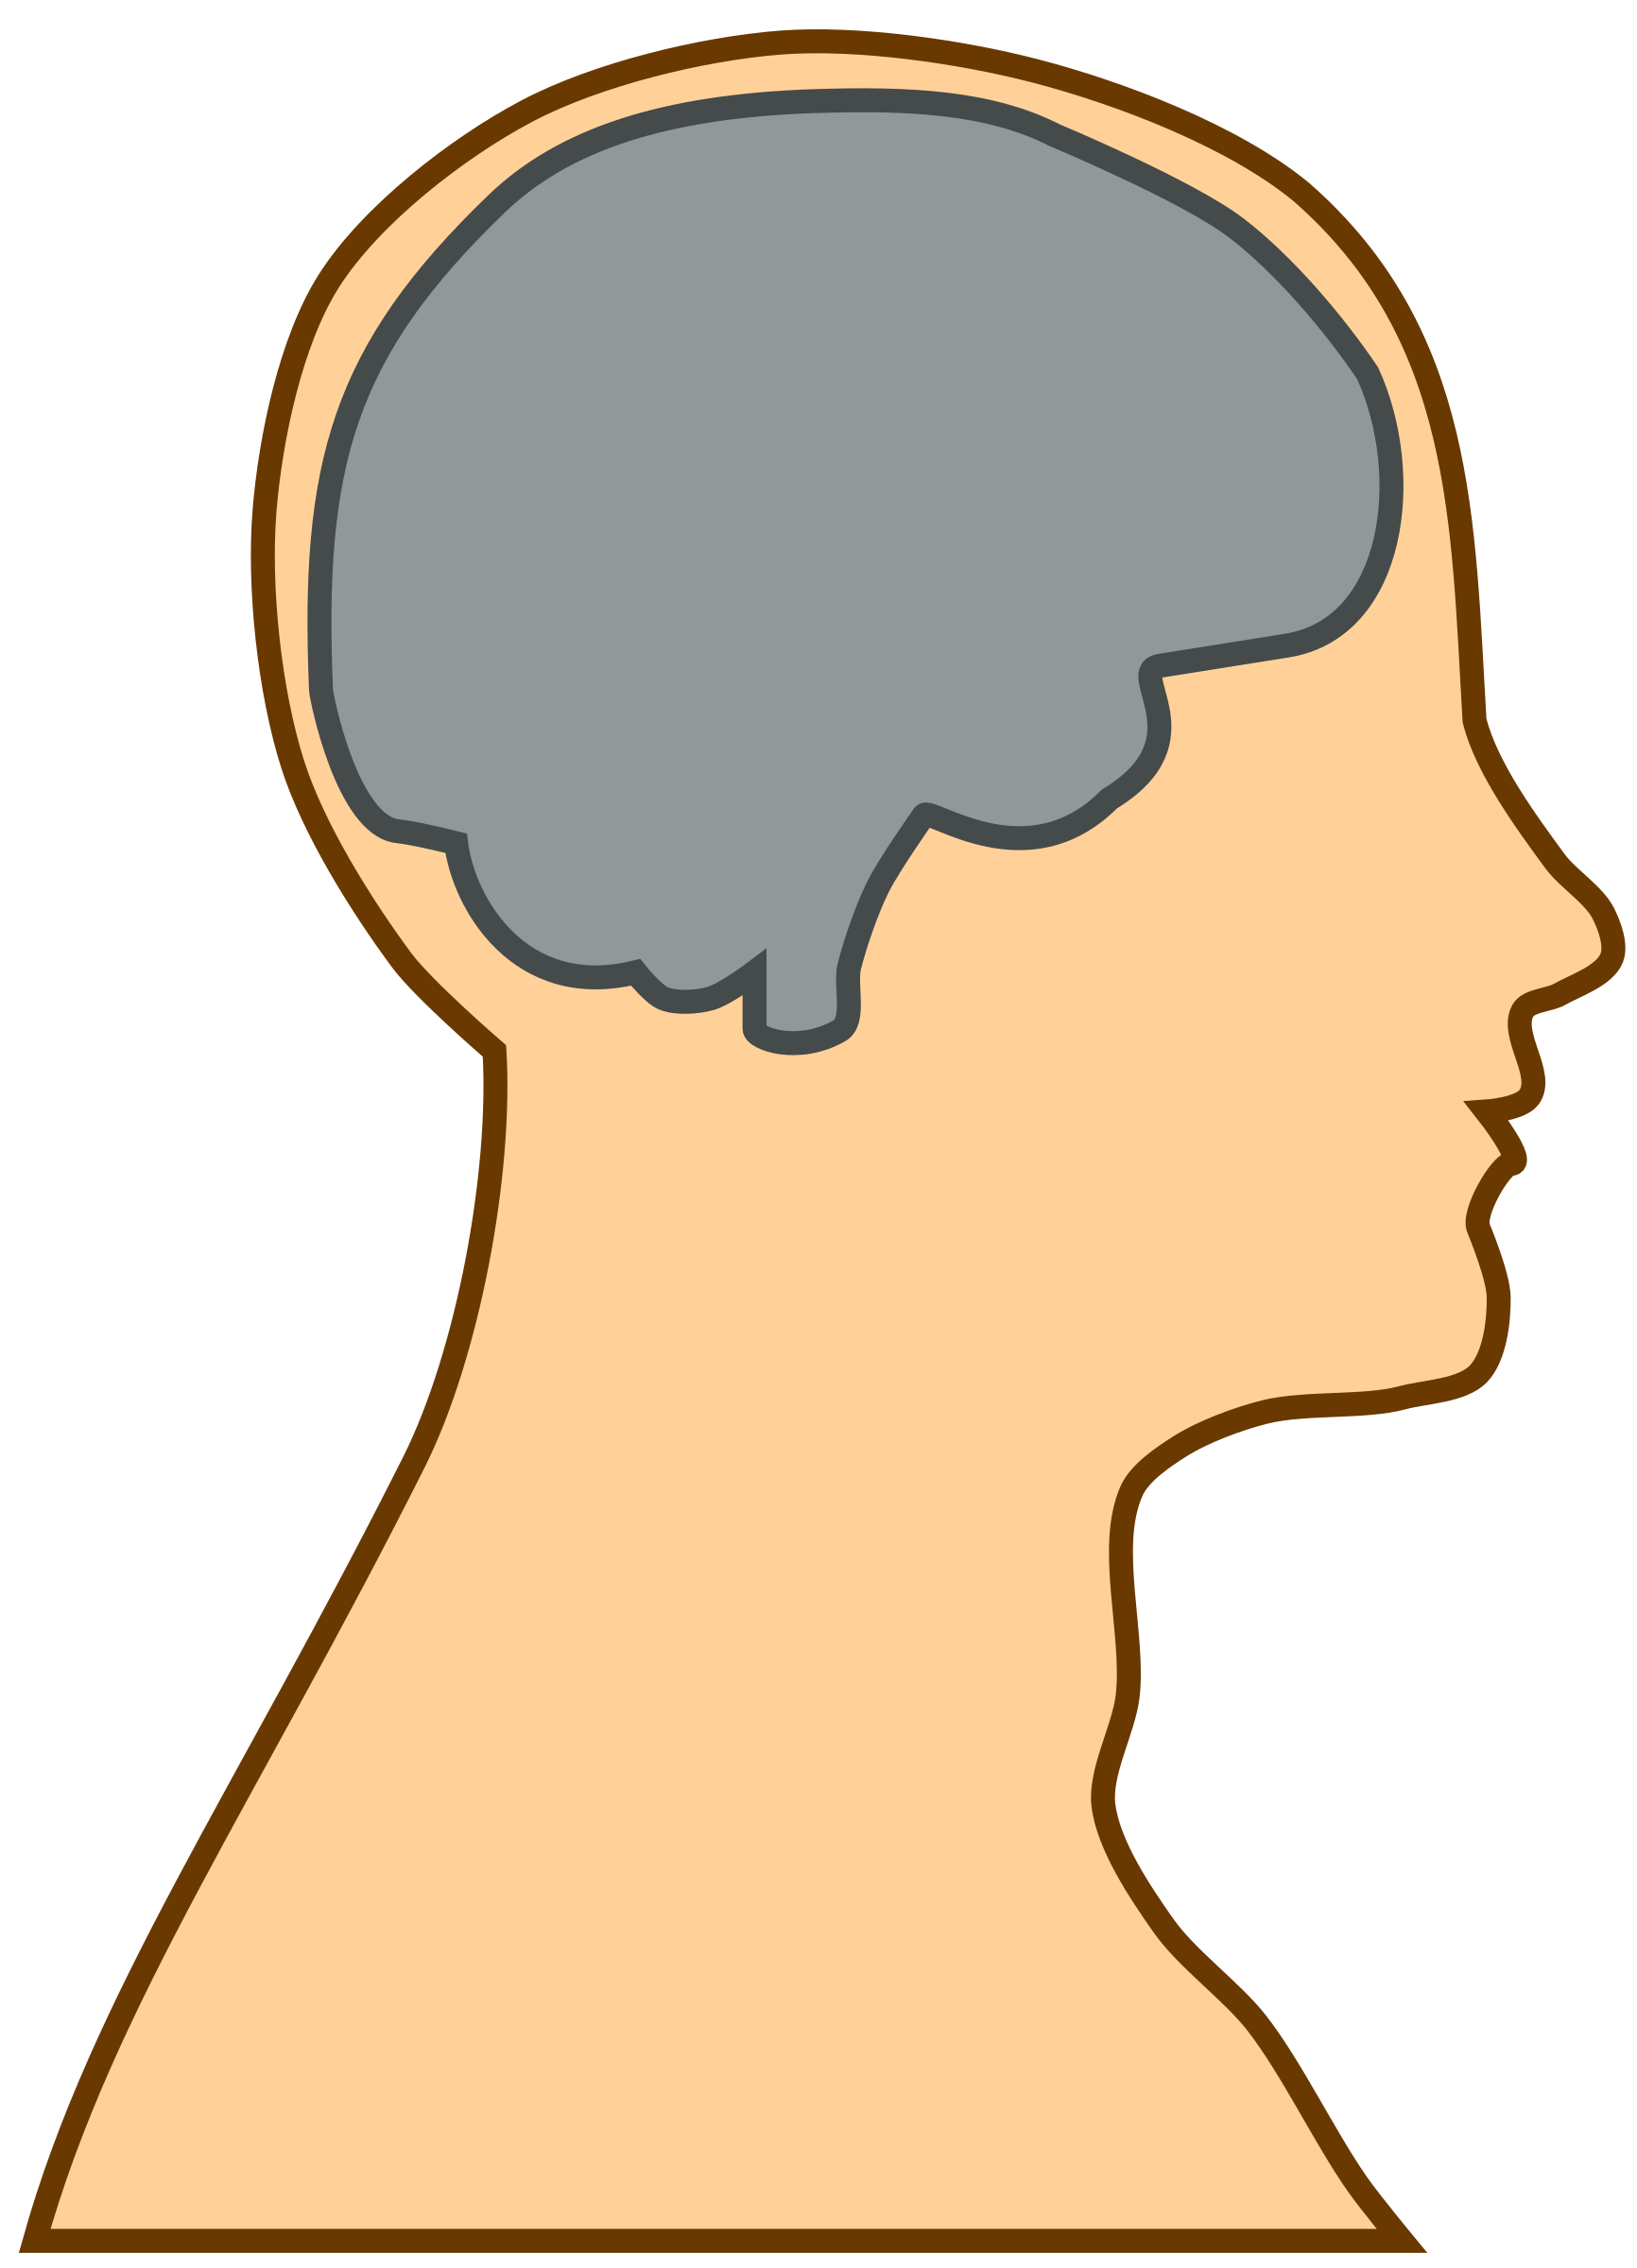 Clipart halloween brain. Silhouette at getdrawings com